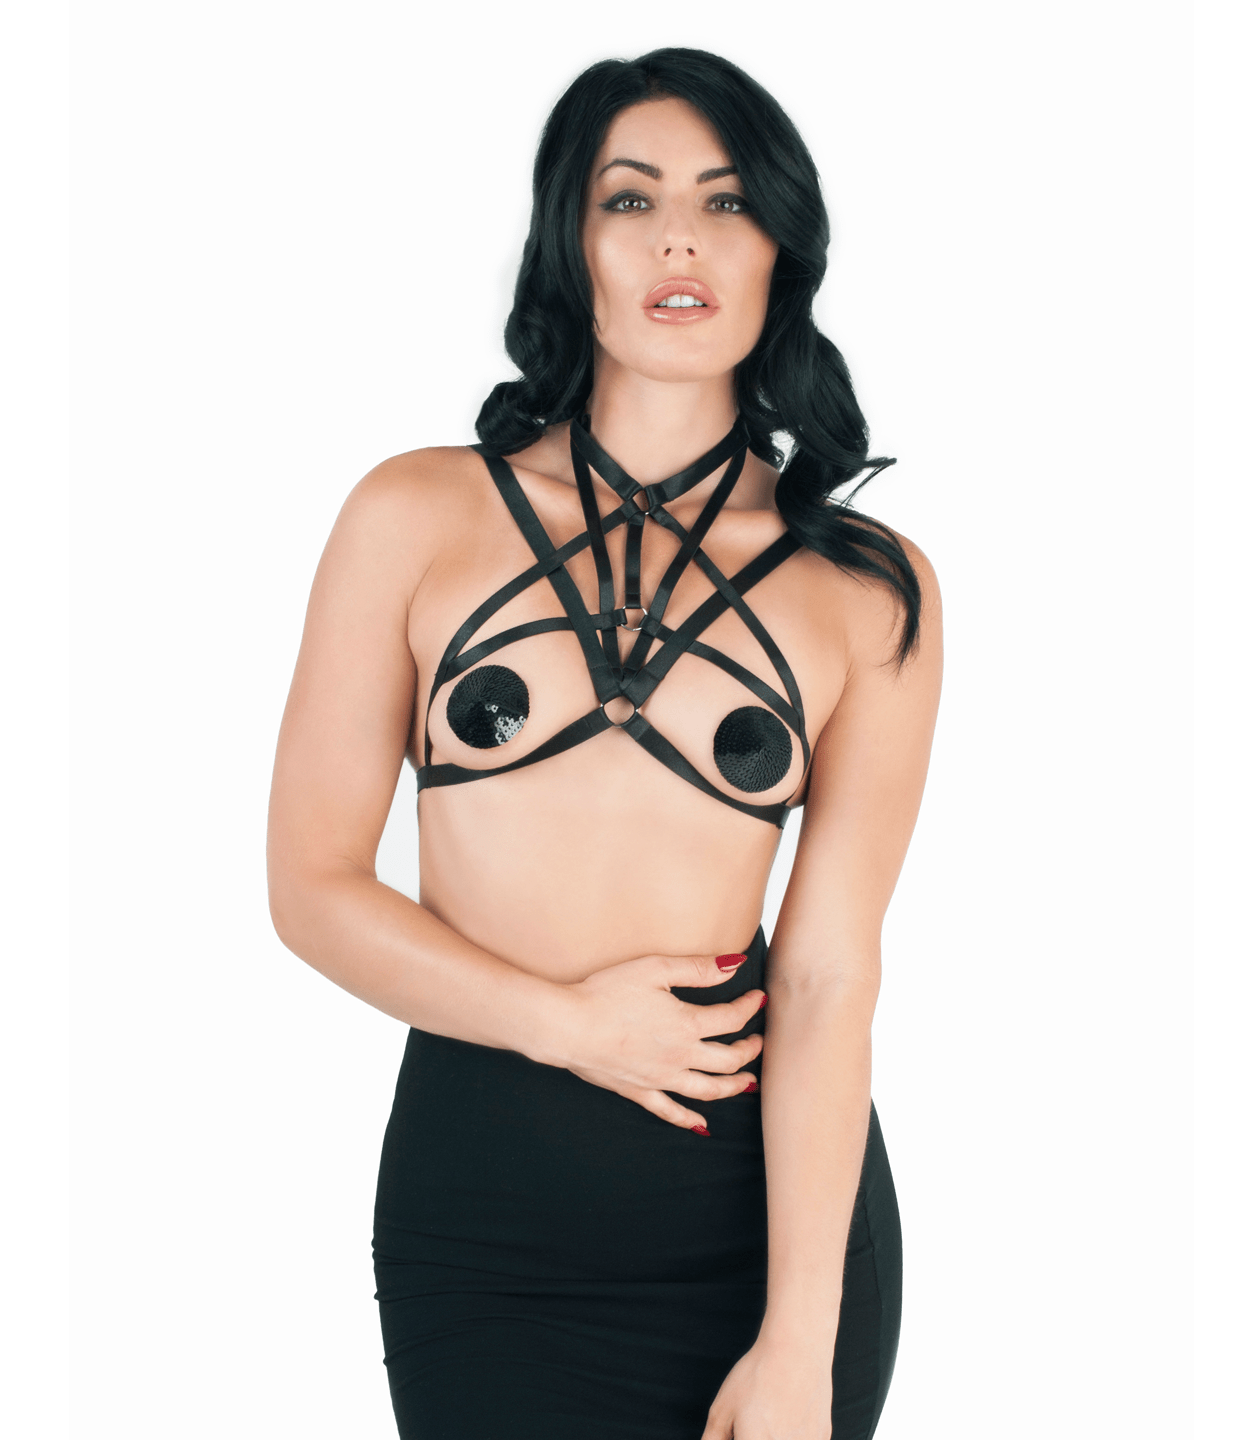 BRA346 Elastic Harness Top Love IN leather front image saucy hq